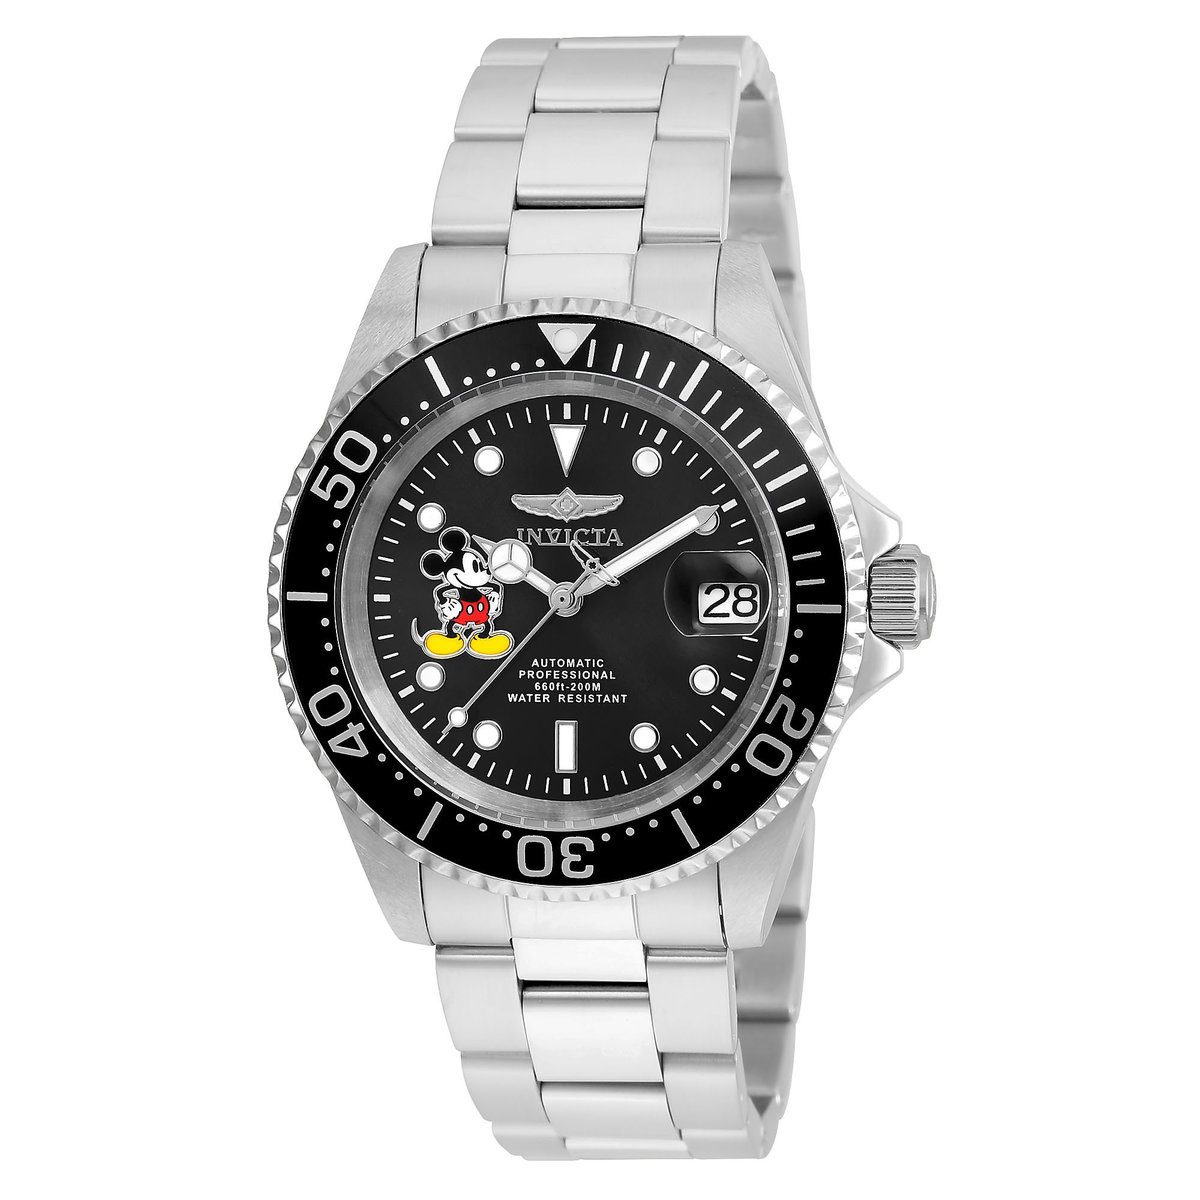 c9c058c914a Product Image of Mickey Mouse Pro Diver Watch for Men by INVICTA - Chrome  Band -